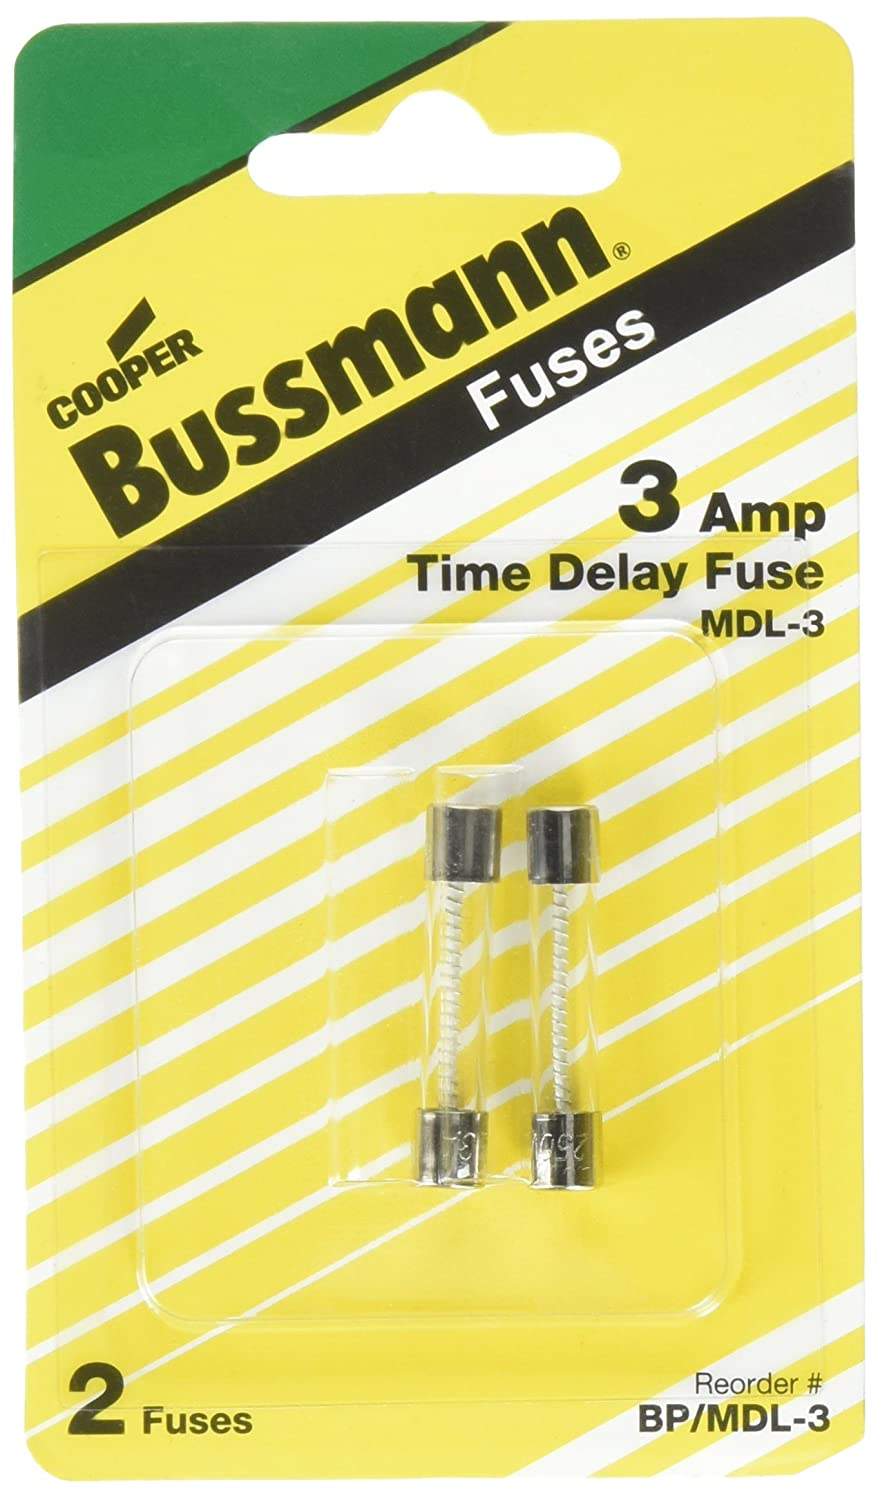 Bussmann Bp Mdl 3 Amp Time Delay Glass Tube Fuse 250vac Ul Listed Box And Electrical Fuses Carded 2 Pack Cartridge